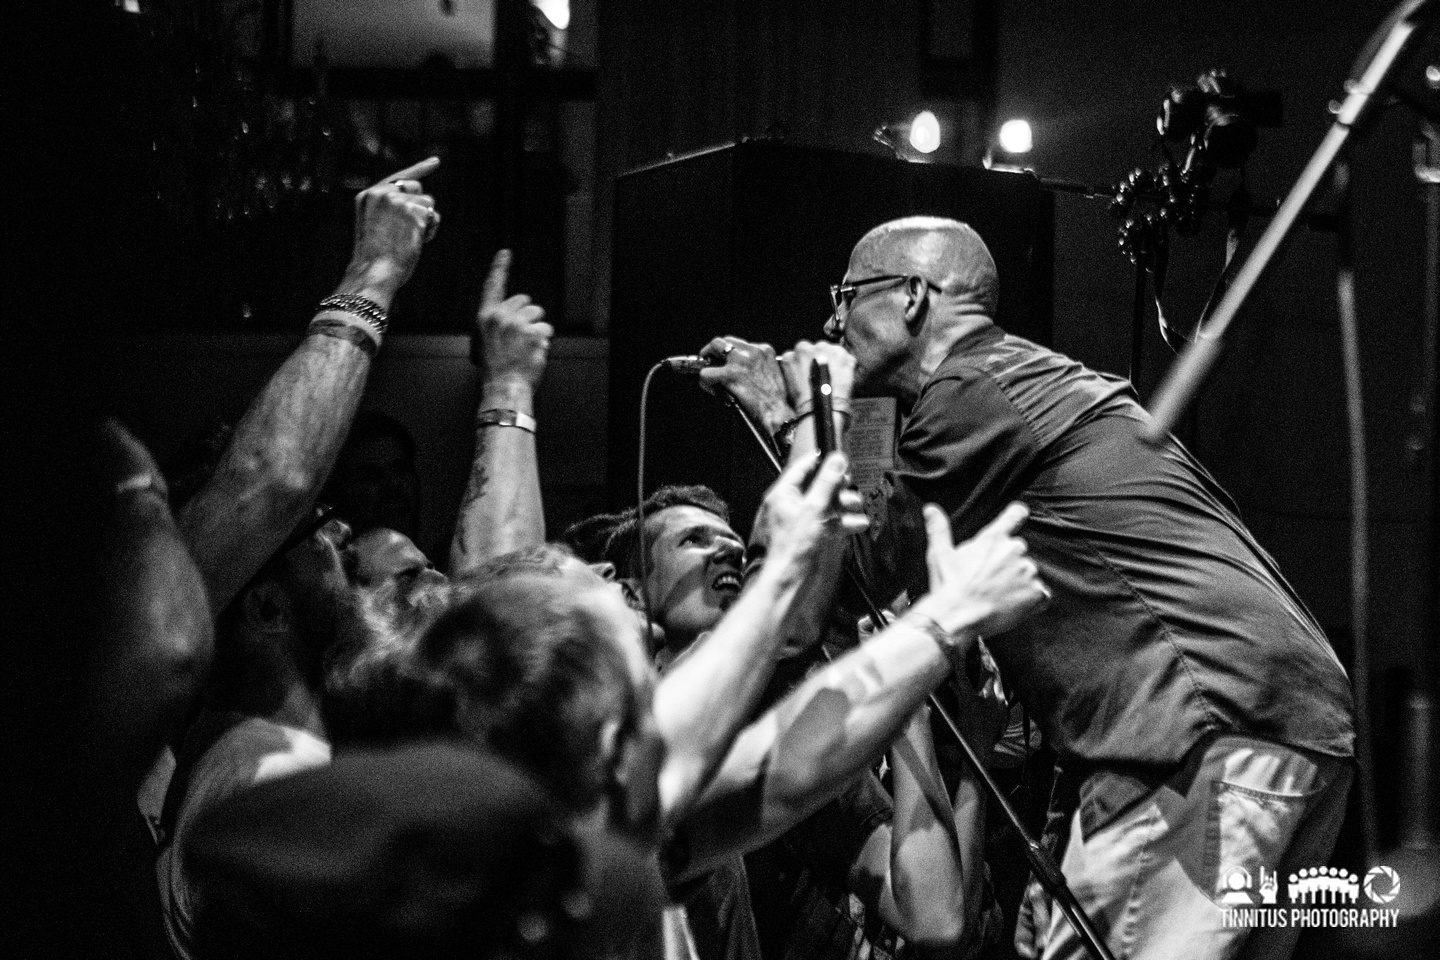 After reuniting in 2016, The Proletariat released a new album and performed a number of concerts across the United States.